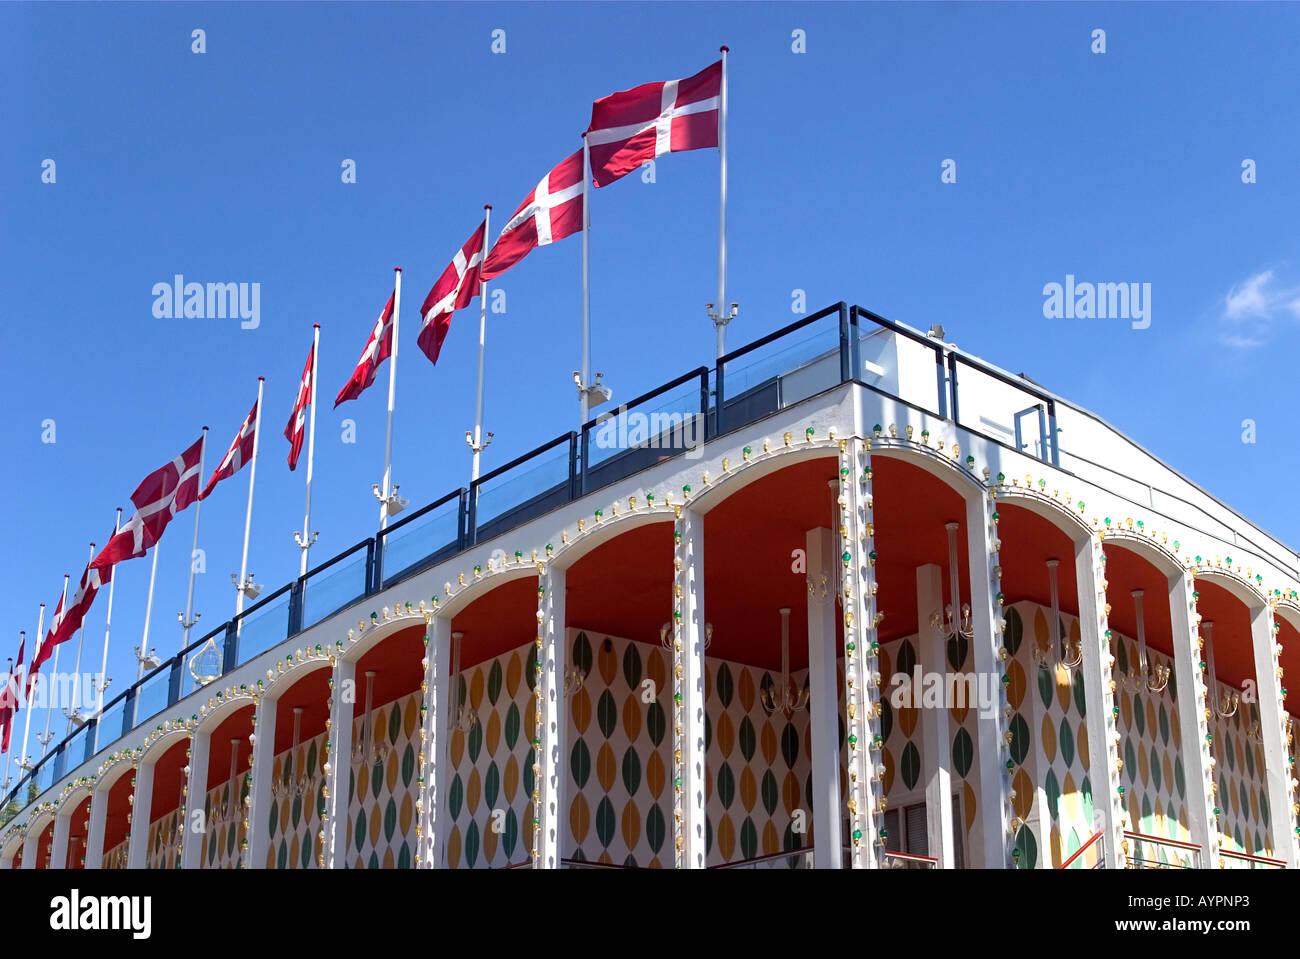 The Concert Hall Tivoli Copenhagen Denmark - Stock Image